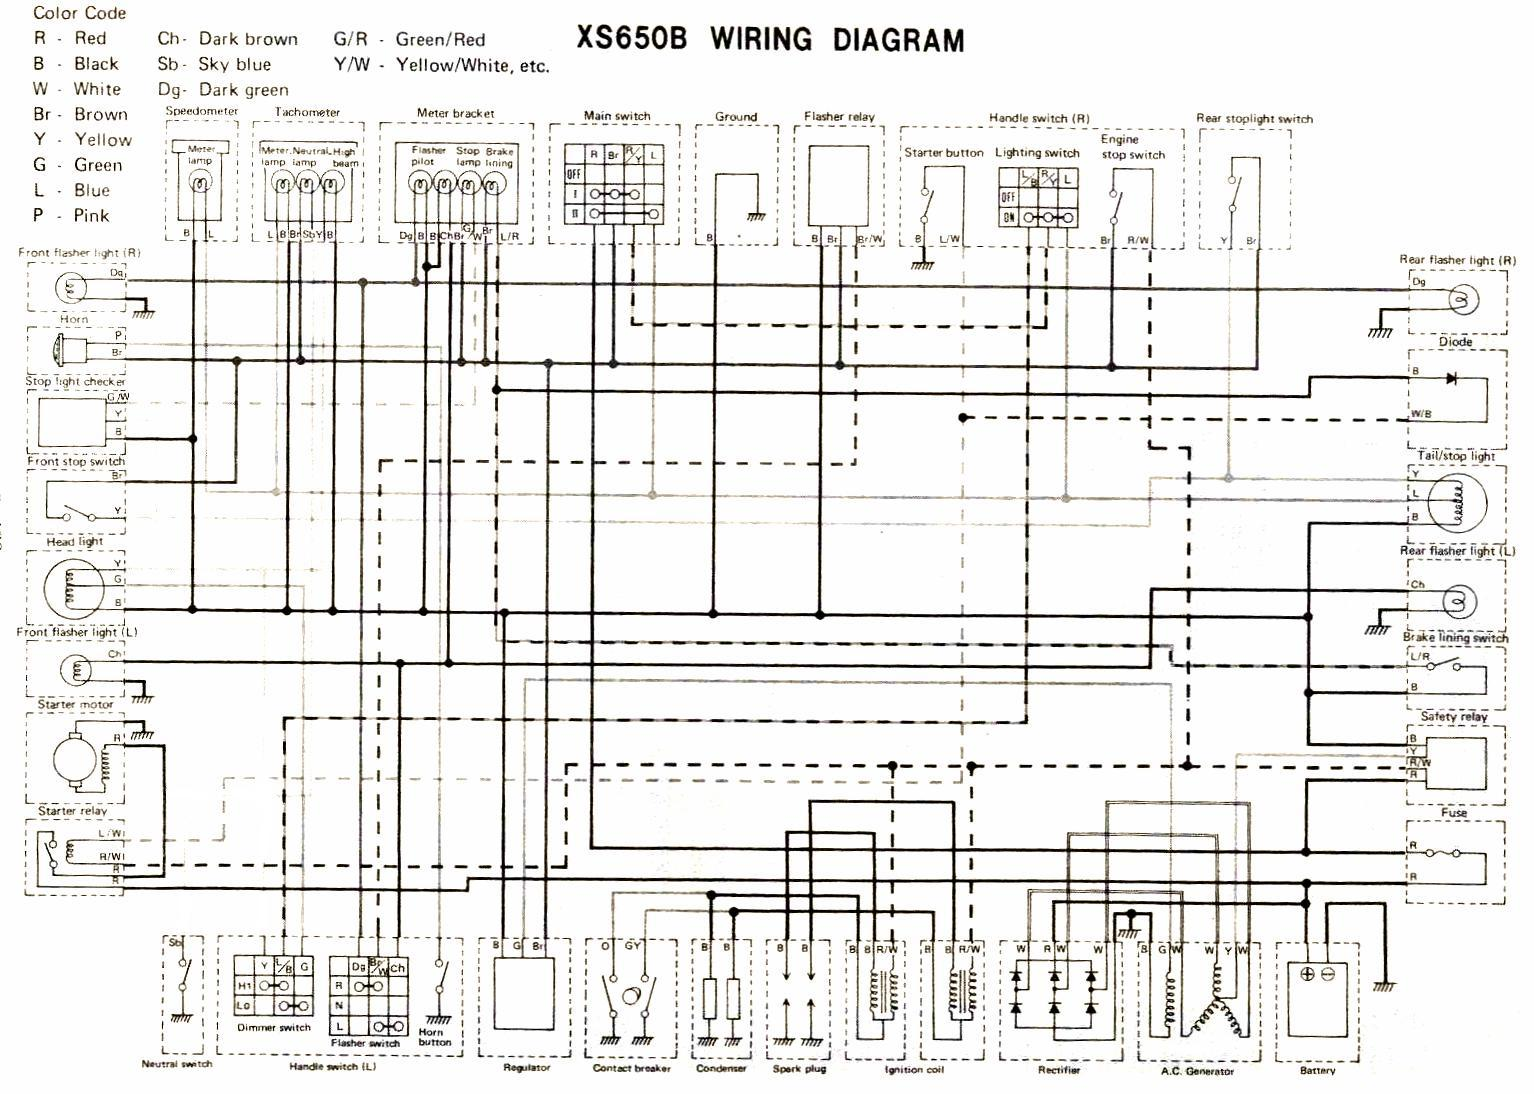 75XS650B wiring diagrams 1978 yamaha xs650 wiring diagram at suagrazia.org